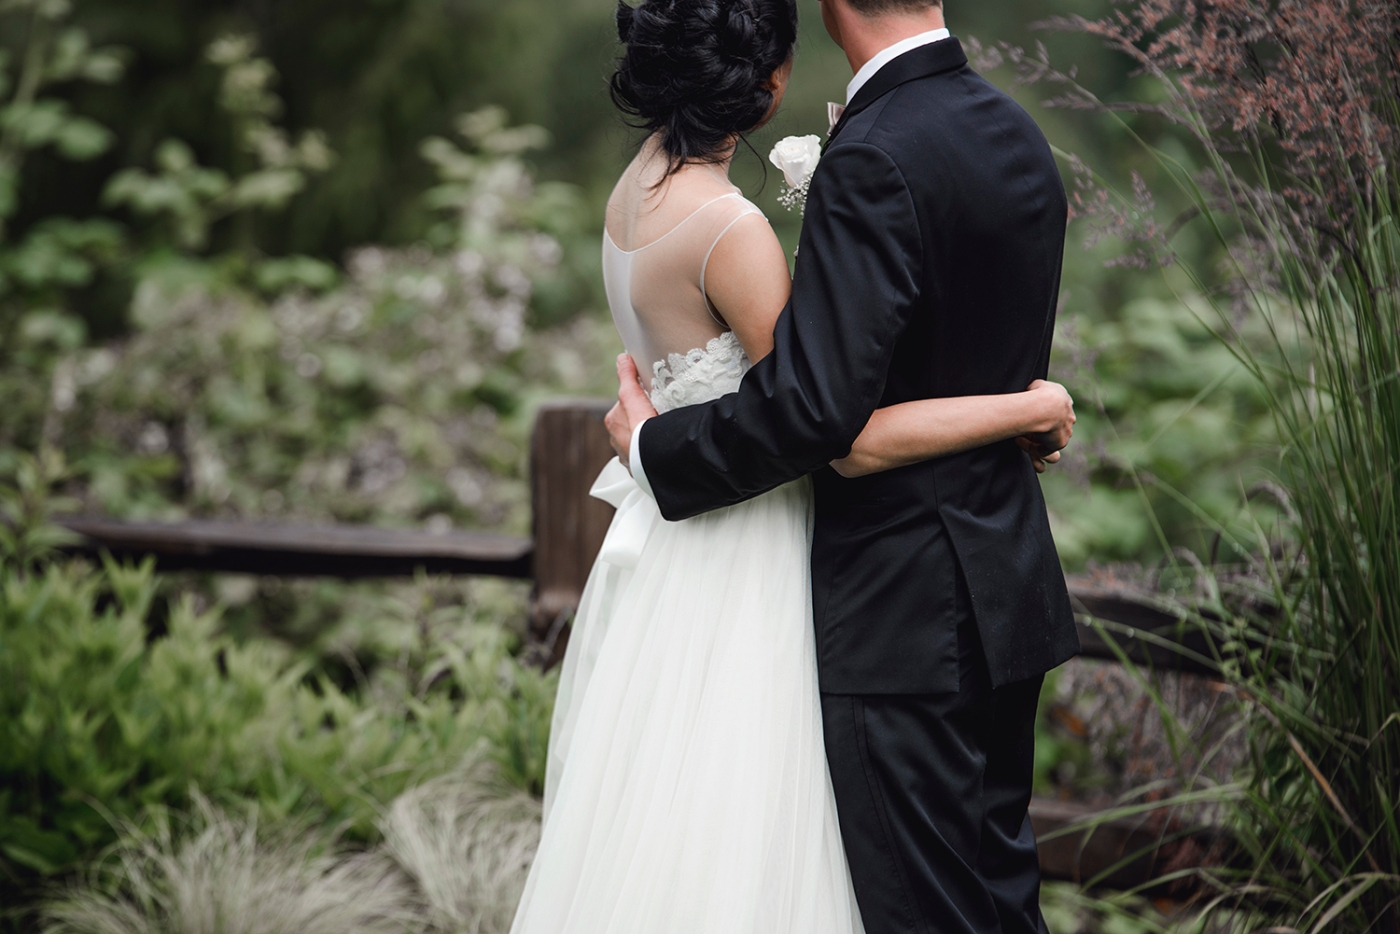 Jane_Speleers_photography_Seattle_Wedding_at_Wild_Rose_estate_2016_Julienne_and_Brian_bride_groom_ DSC_0386